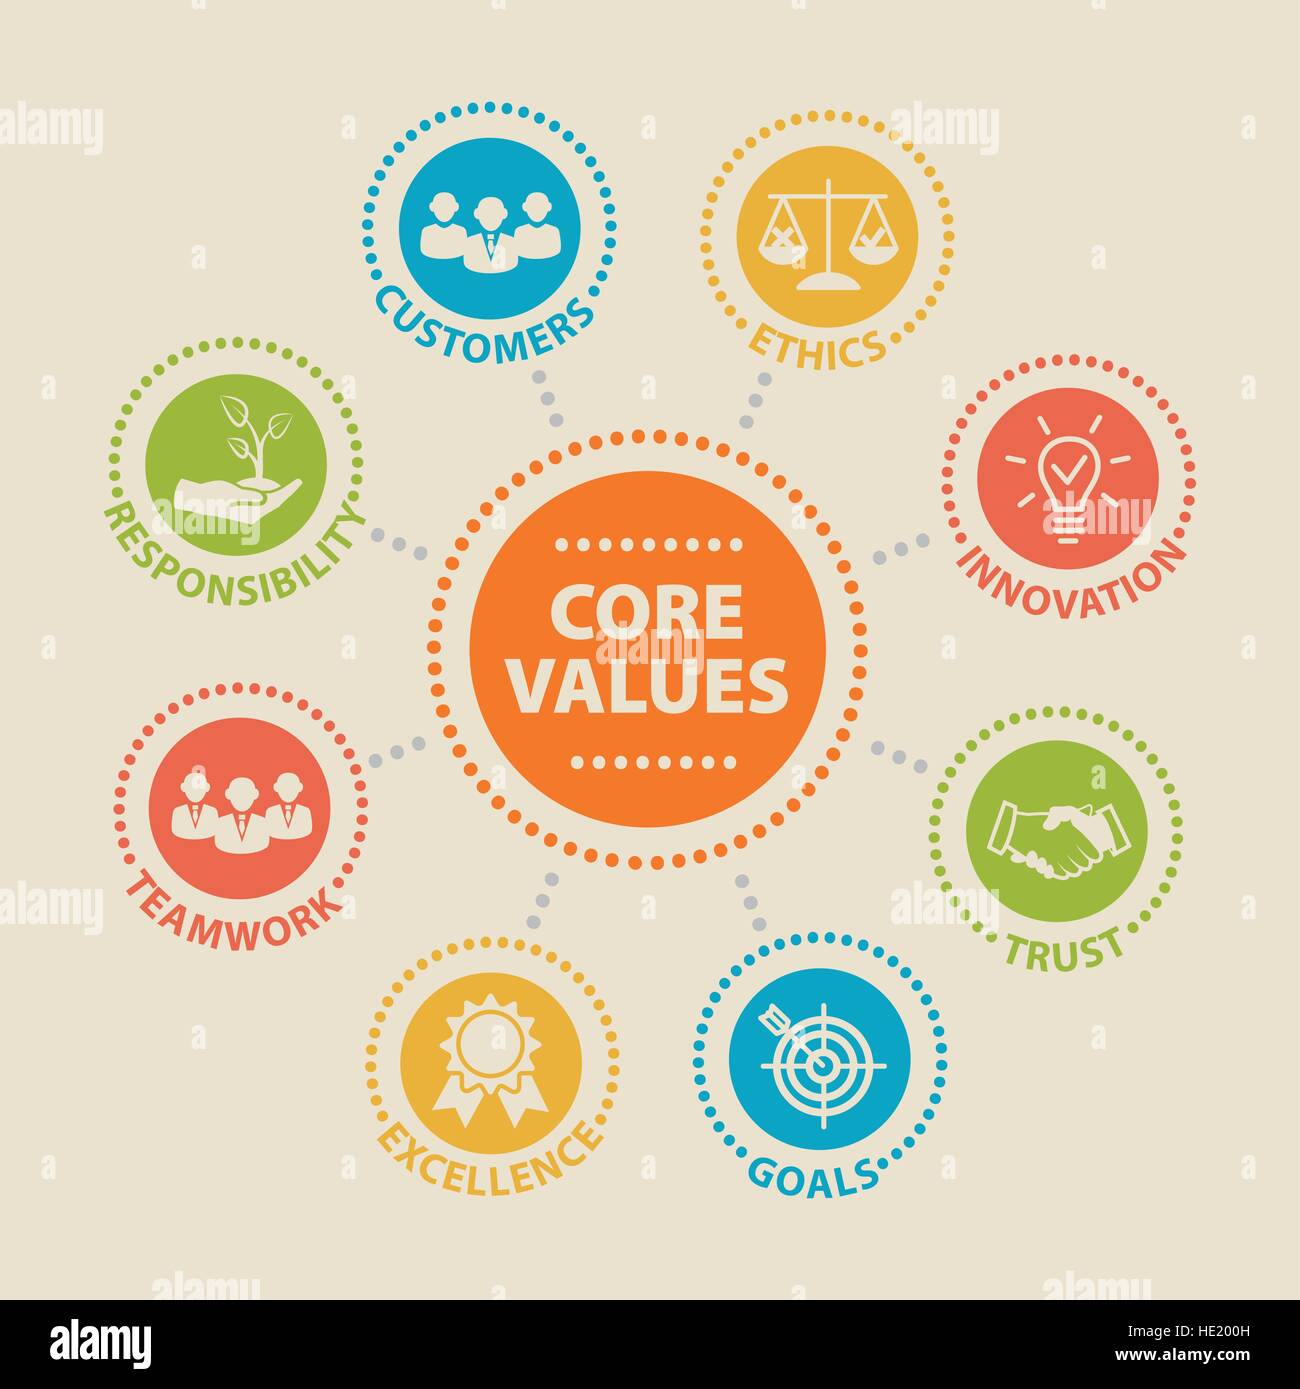 CORE VALUES Concept with icons and signs - Stock Vector